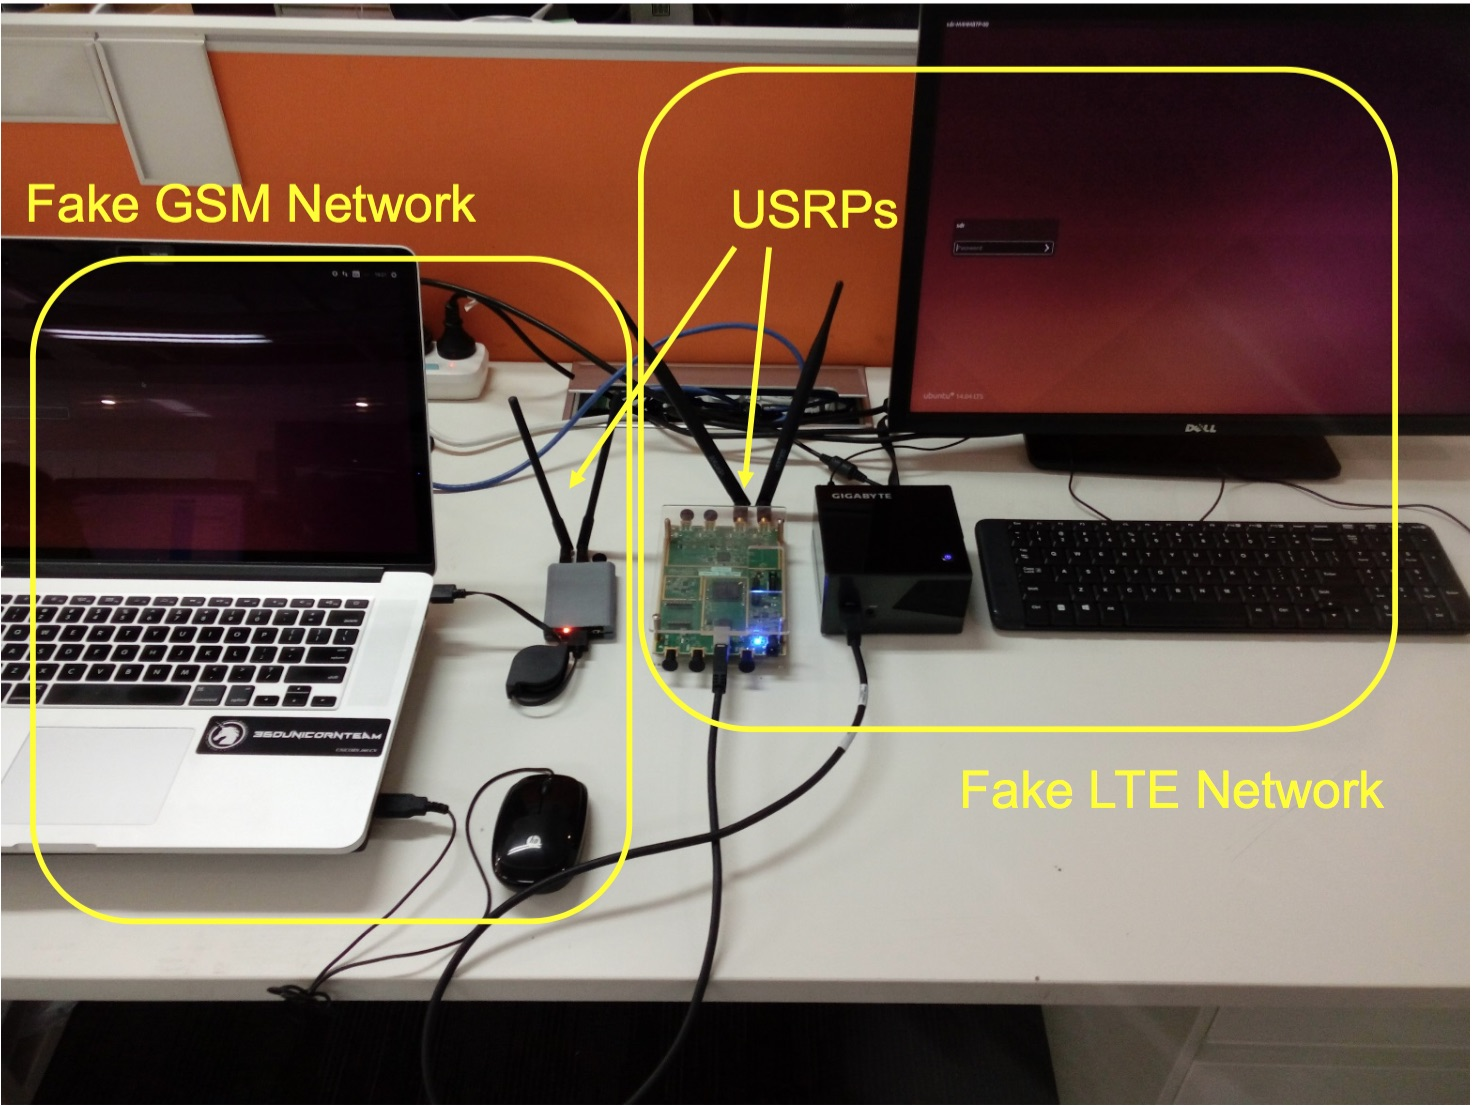 GSM MiTM Fake BSS allows hackers to eavesdrop on conversations, read texts, and track your smartphone location